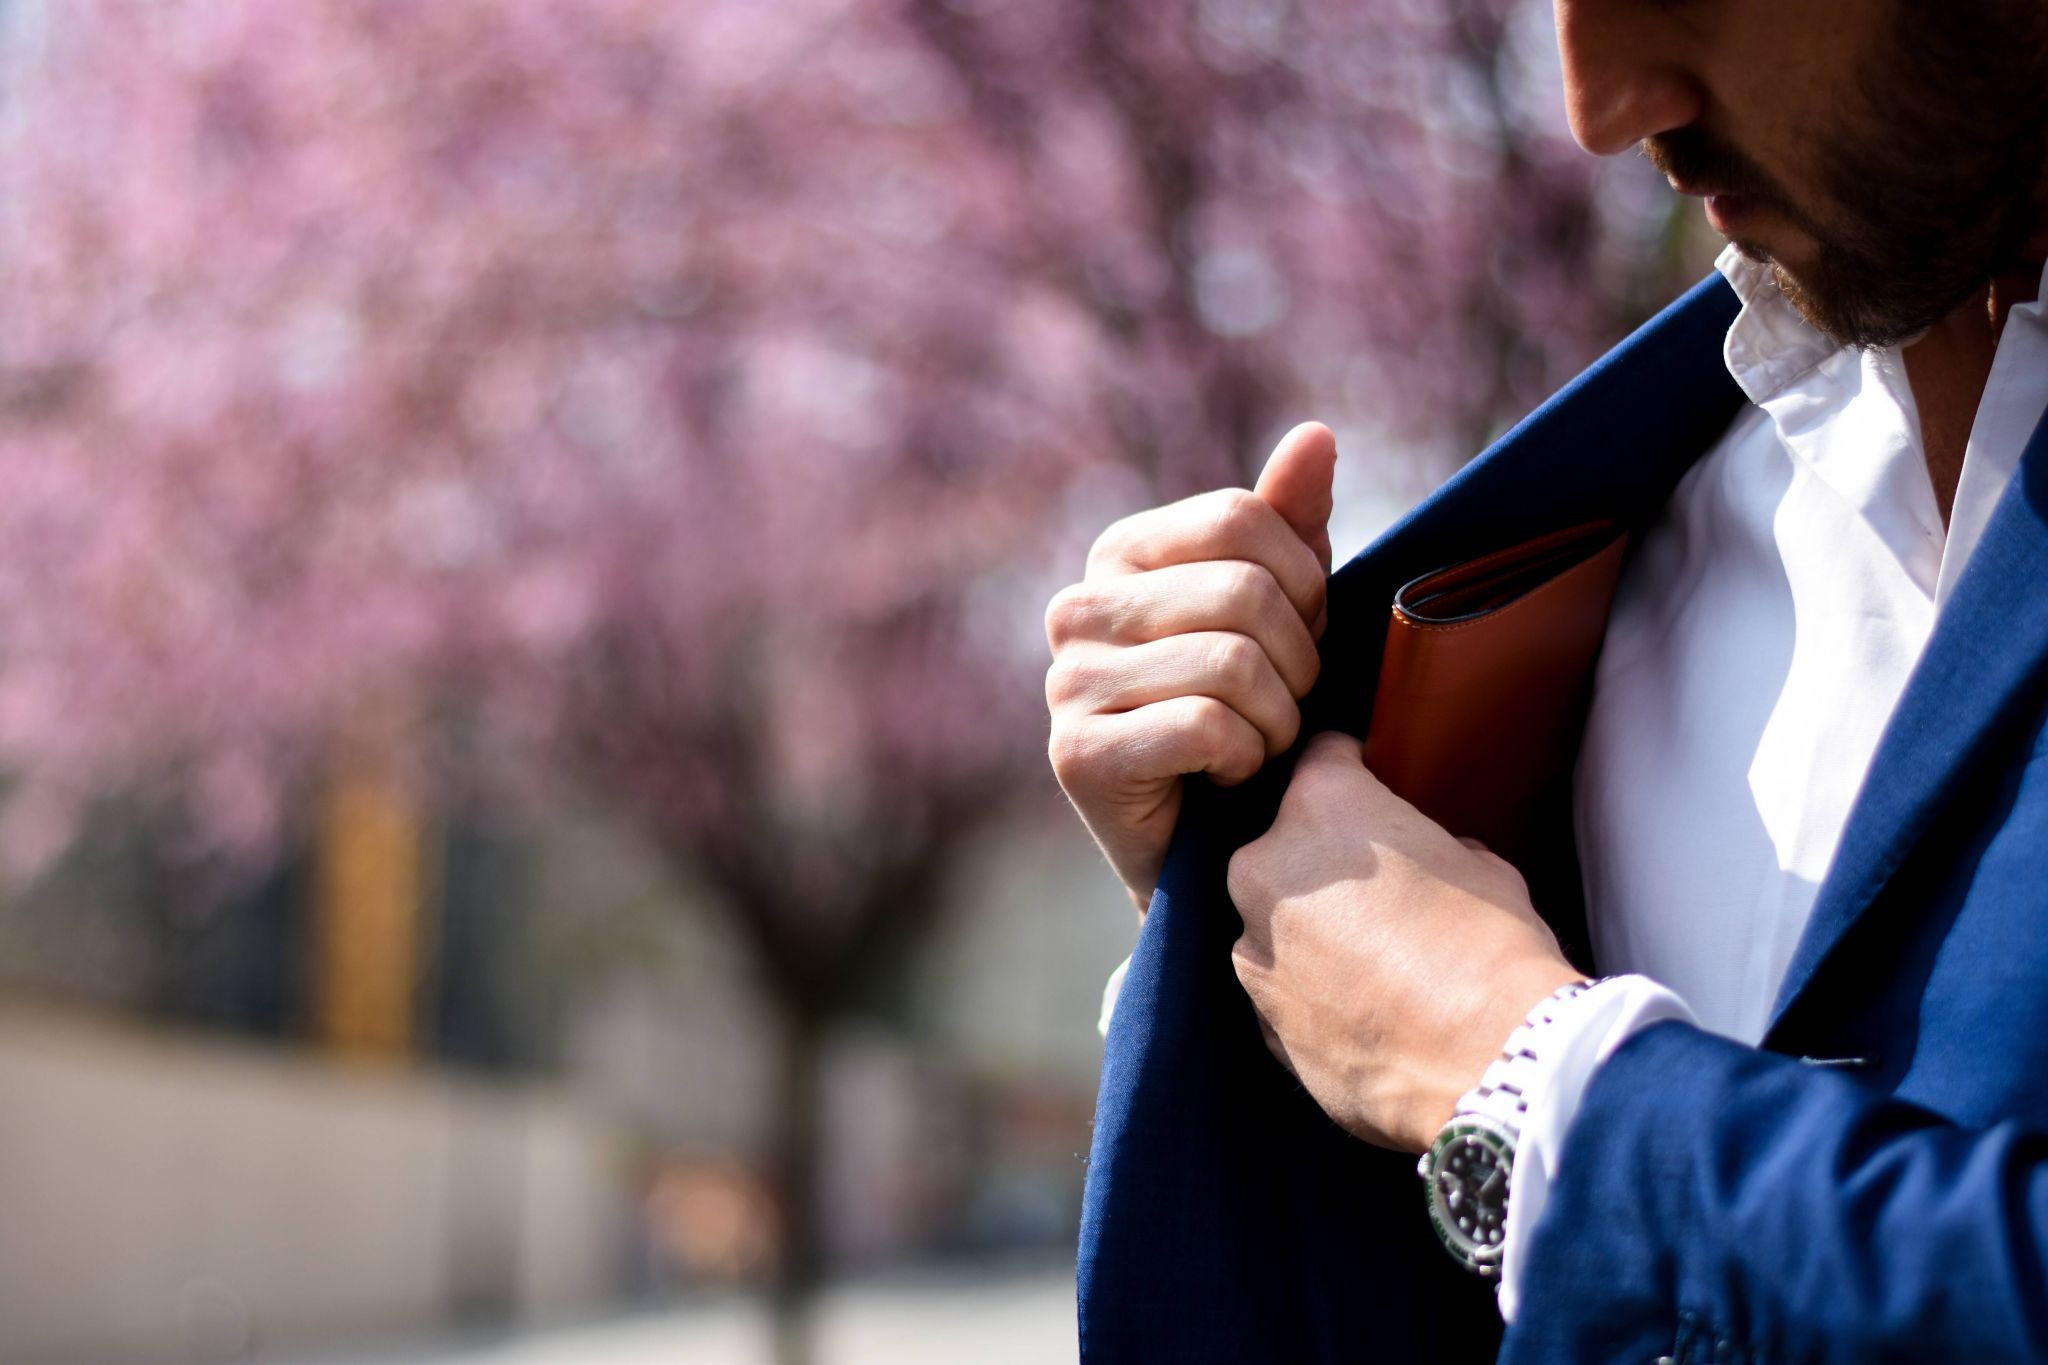 Debt management plan - man in a blue suit putting his wallet away